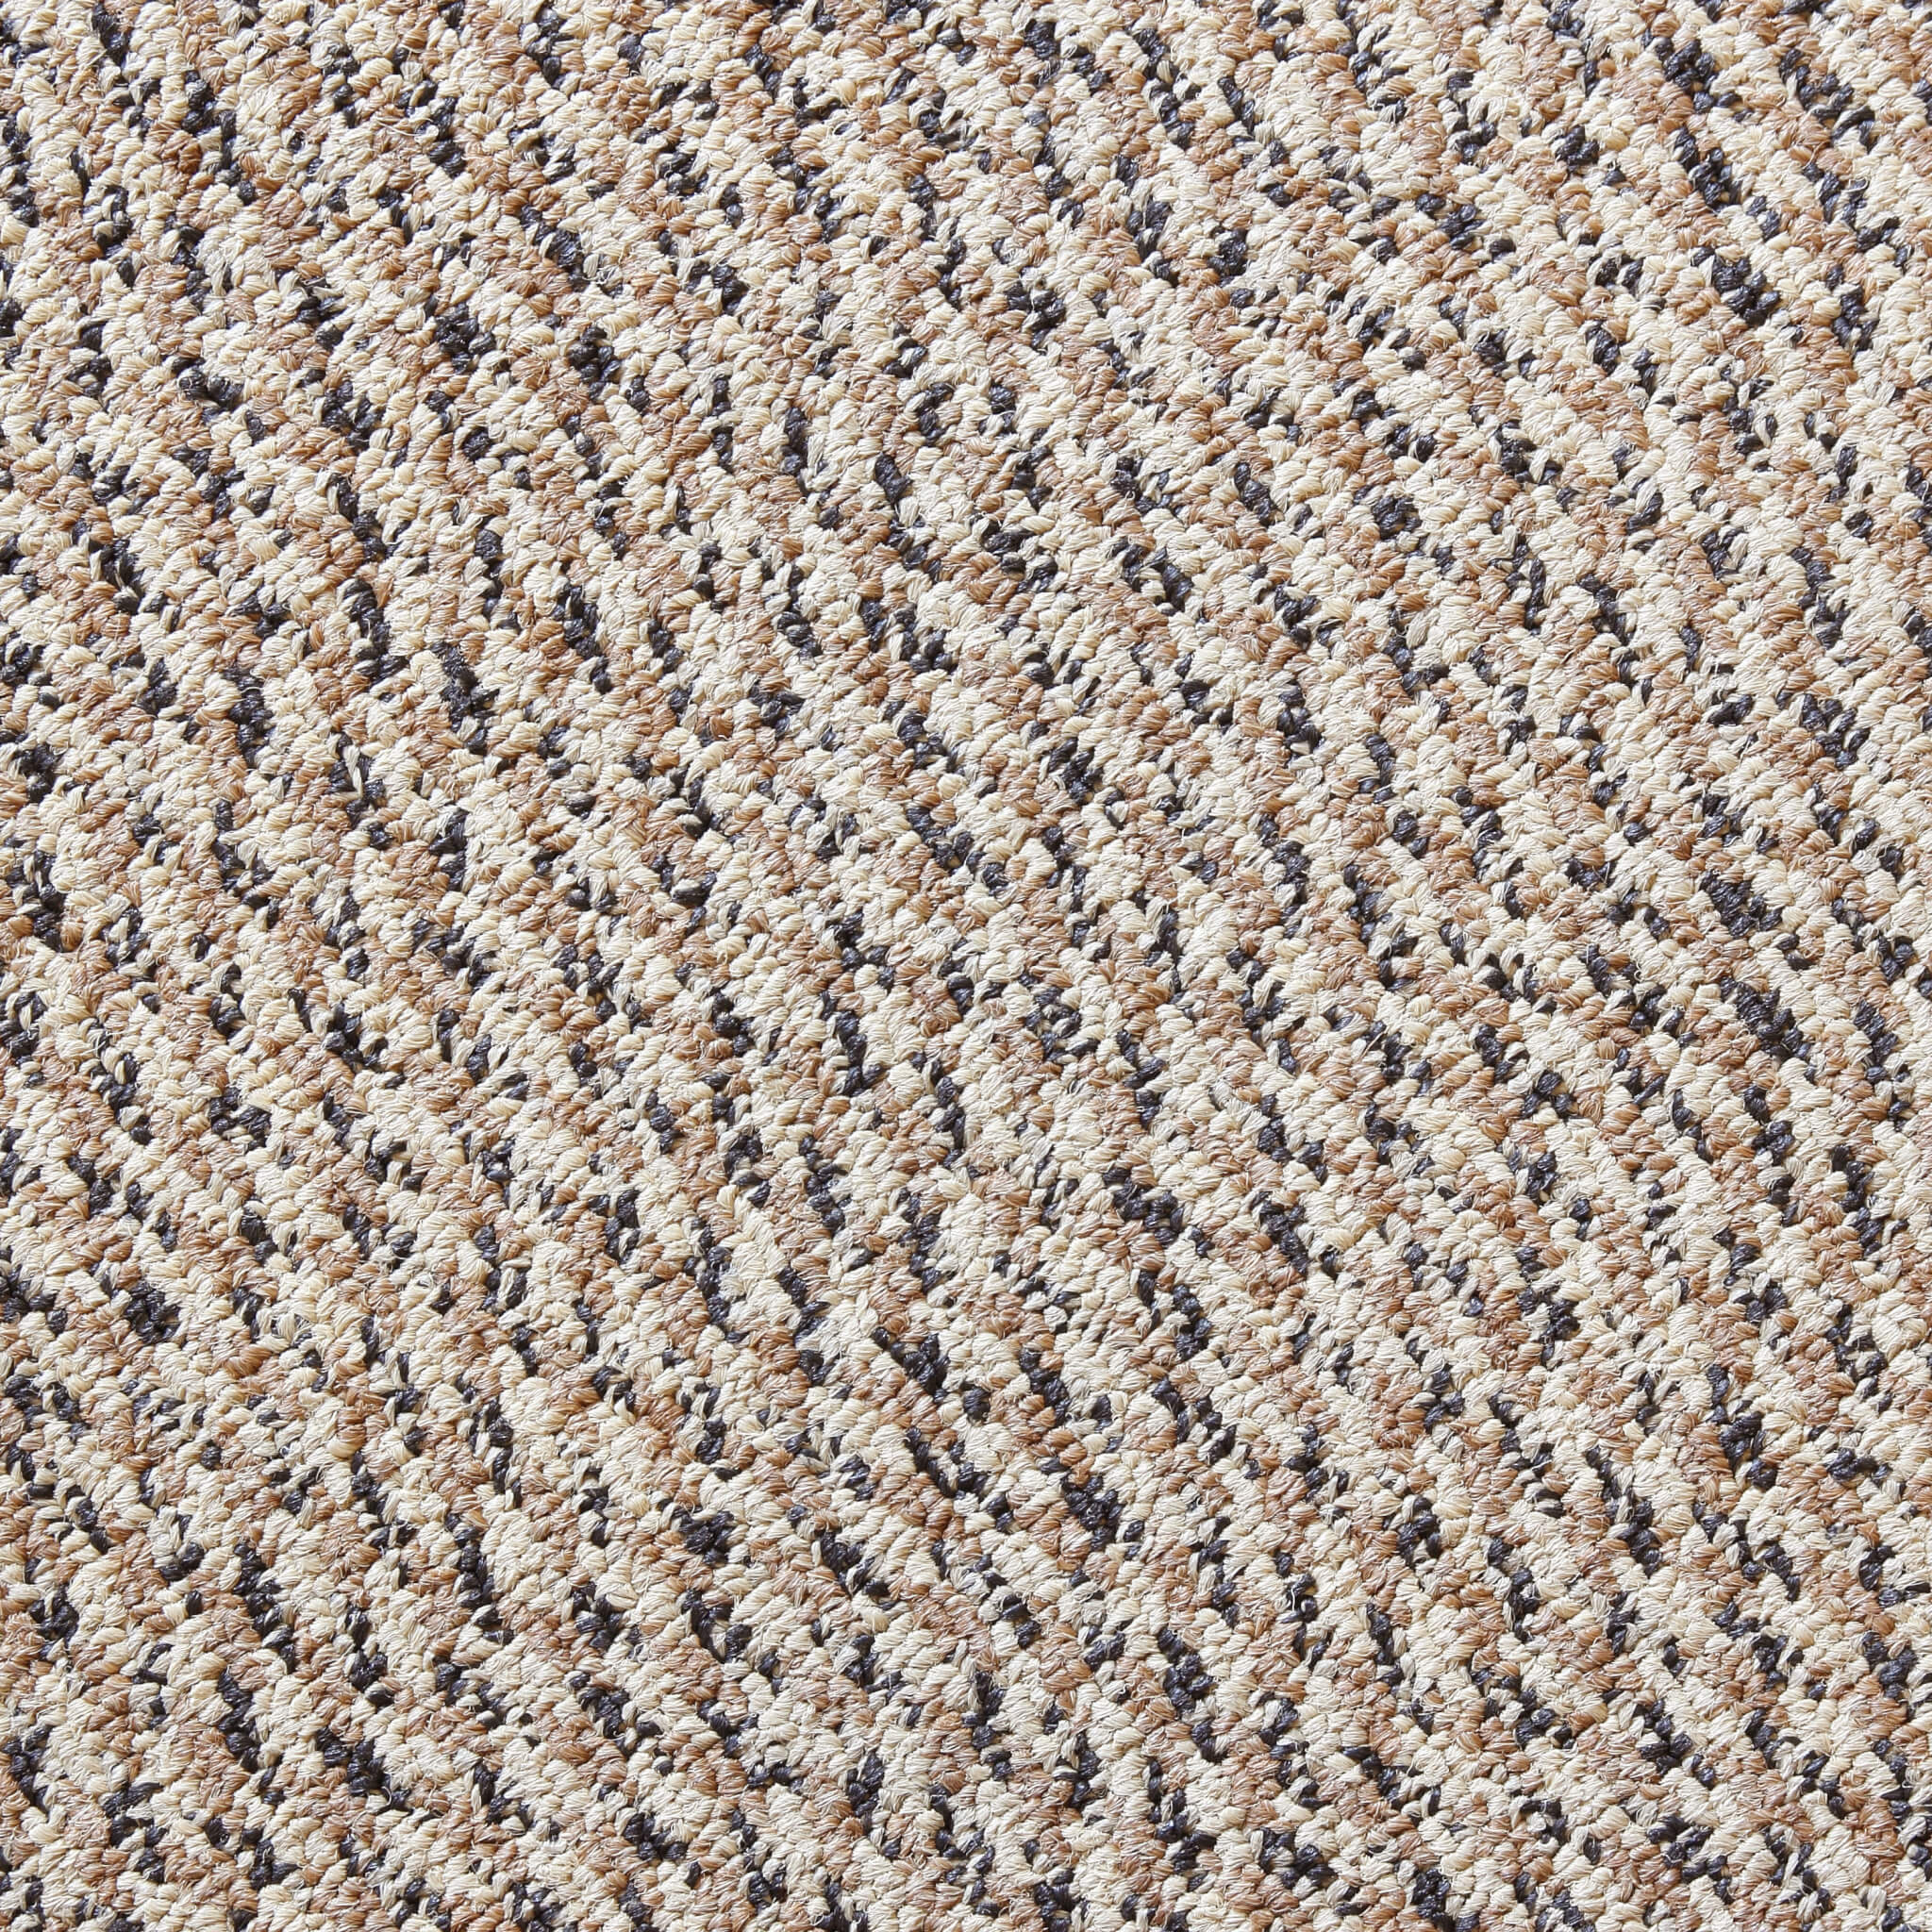 Carpet texture for background - Carpet Gallery